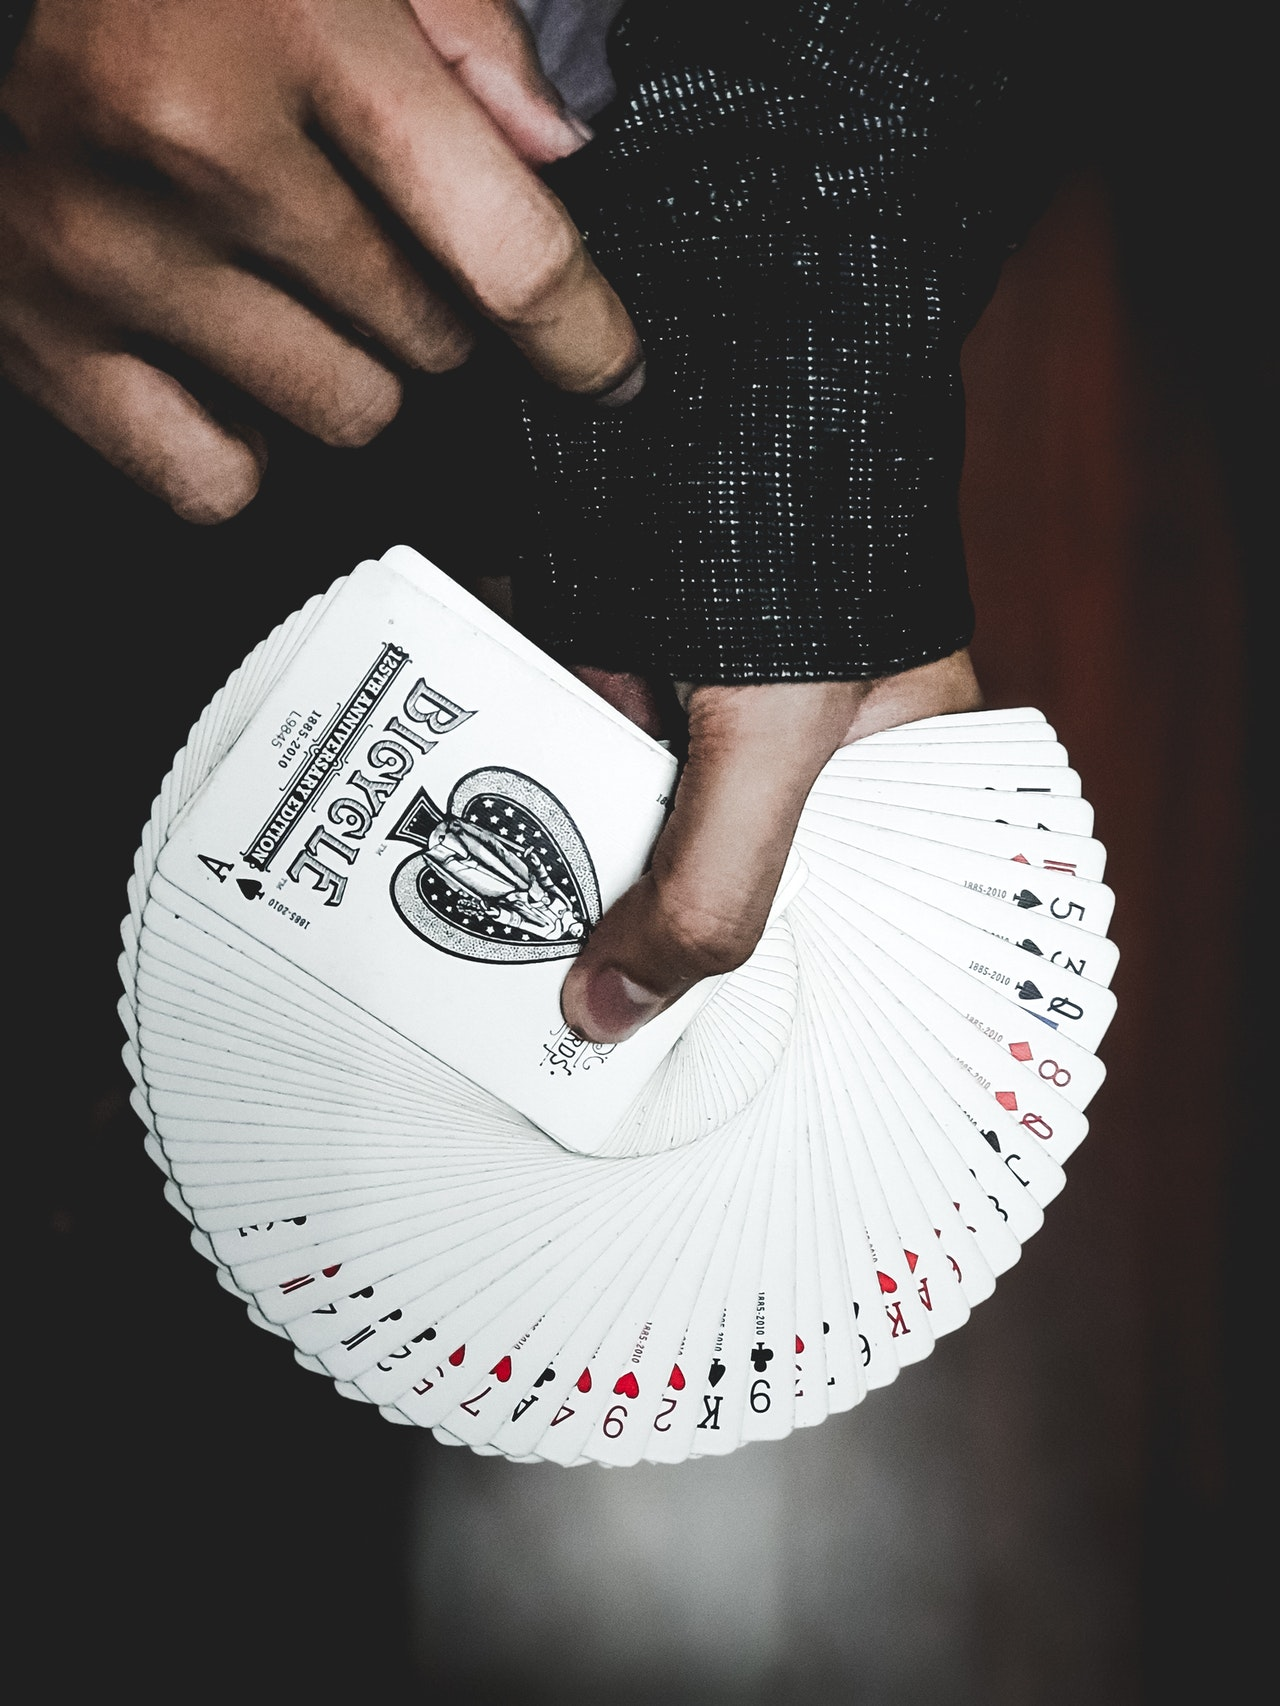 deck of cards in the hand